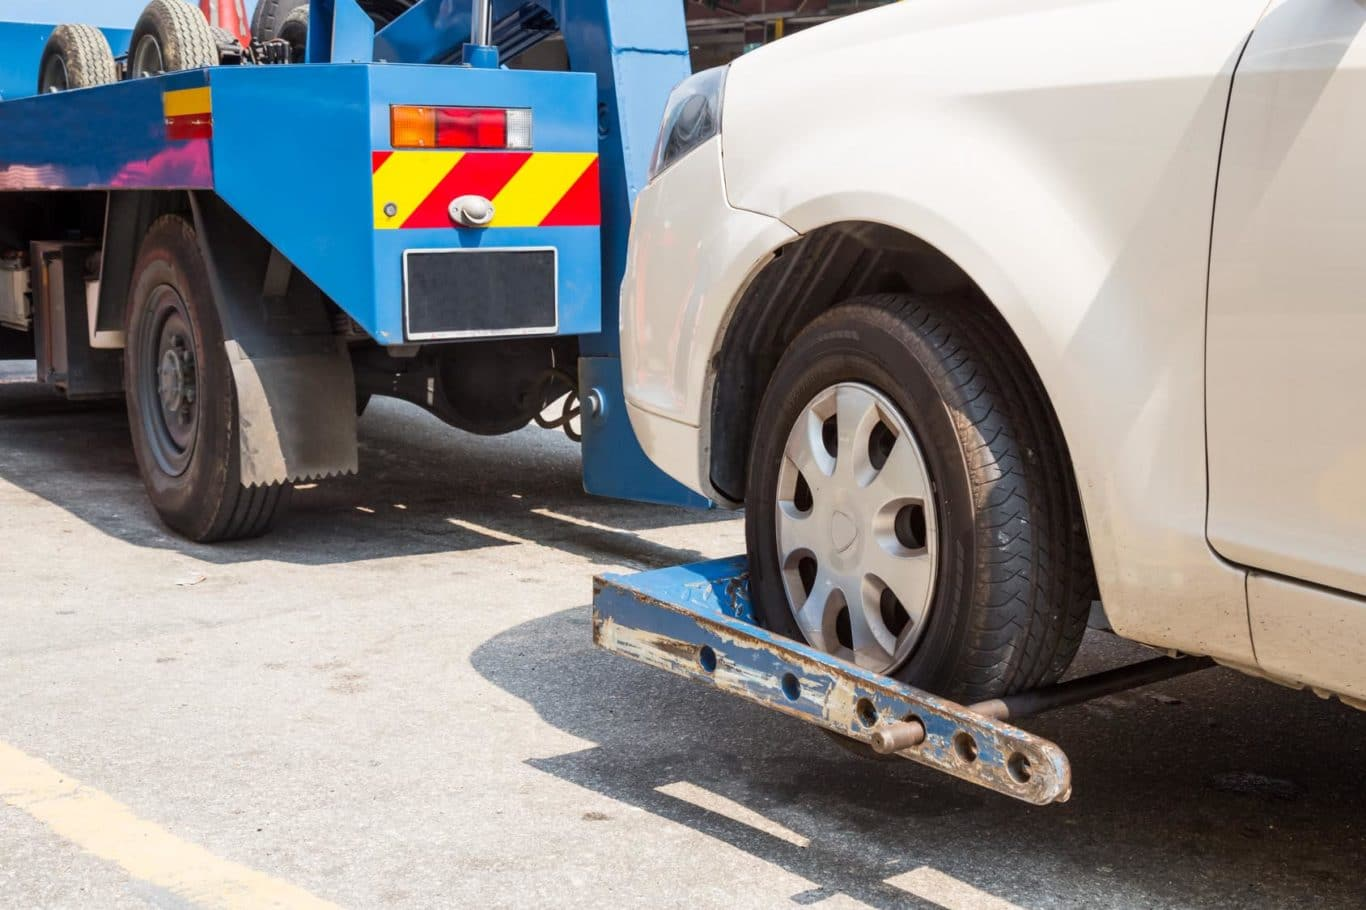 Beaumont expert Tow Truck services